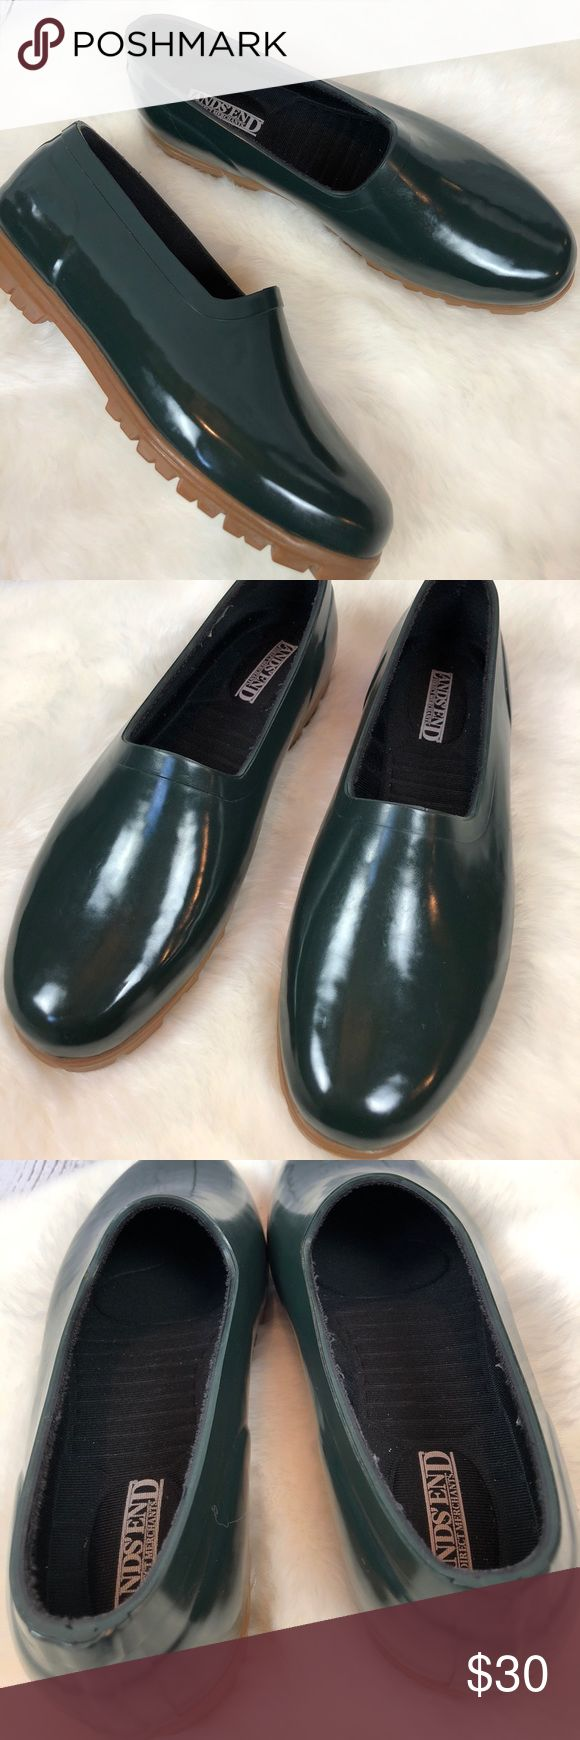 •Lands End• Green Rubber Duck Wellies Shoes Sz 10 These are SO PREPPY & FUN!!! Lands' End Emerald green chic low top duck boots/rain shoes with gum sole. Waterproof. Women's Size 10. Slip On. Show very minor wear & look unworn. Total 90's look!!  Inside features removable ergonomic / textured neoprene insoles with arch support & Lands' End logo. Smoke free home!! Lands' End Shoes Moccasins